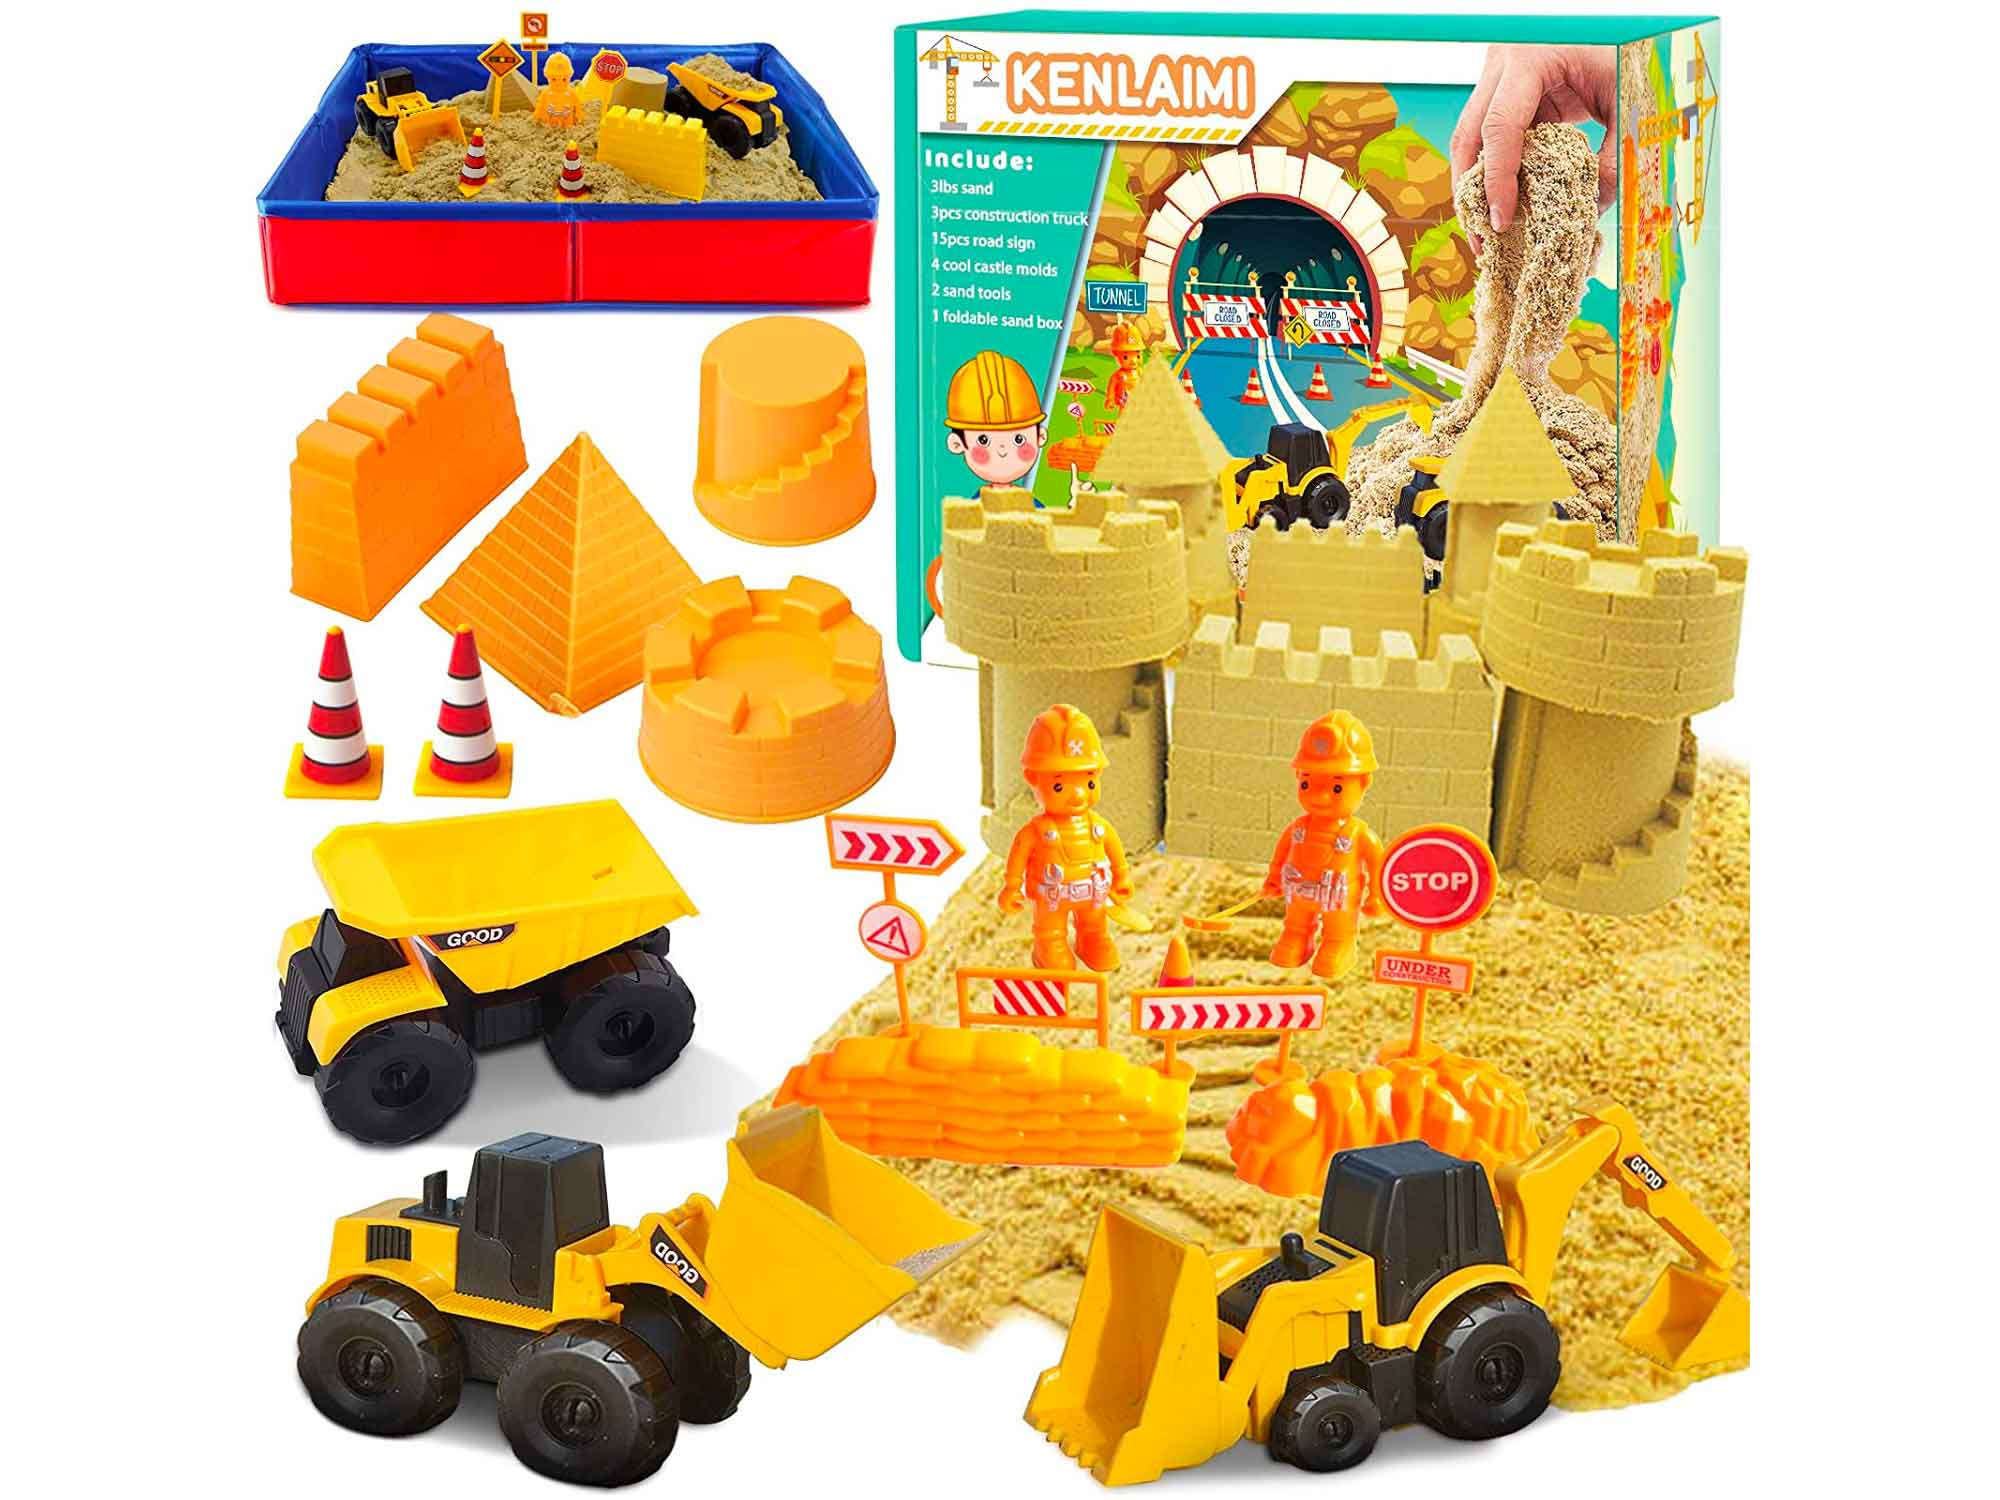 Kenlaimi Play Construction Sand Kit - 3lbs Sand with 3 Large Construction Trucks,16 Construction Toys & Signs,4 Castle Molds and Foldable Sandbox,Sensory Toys for 3, 4, 5 Year Old Toddlers